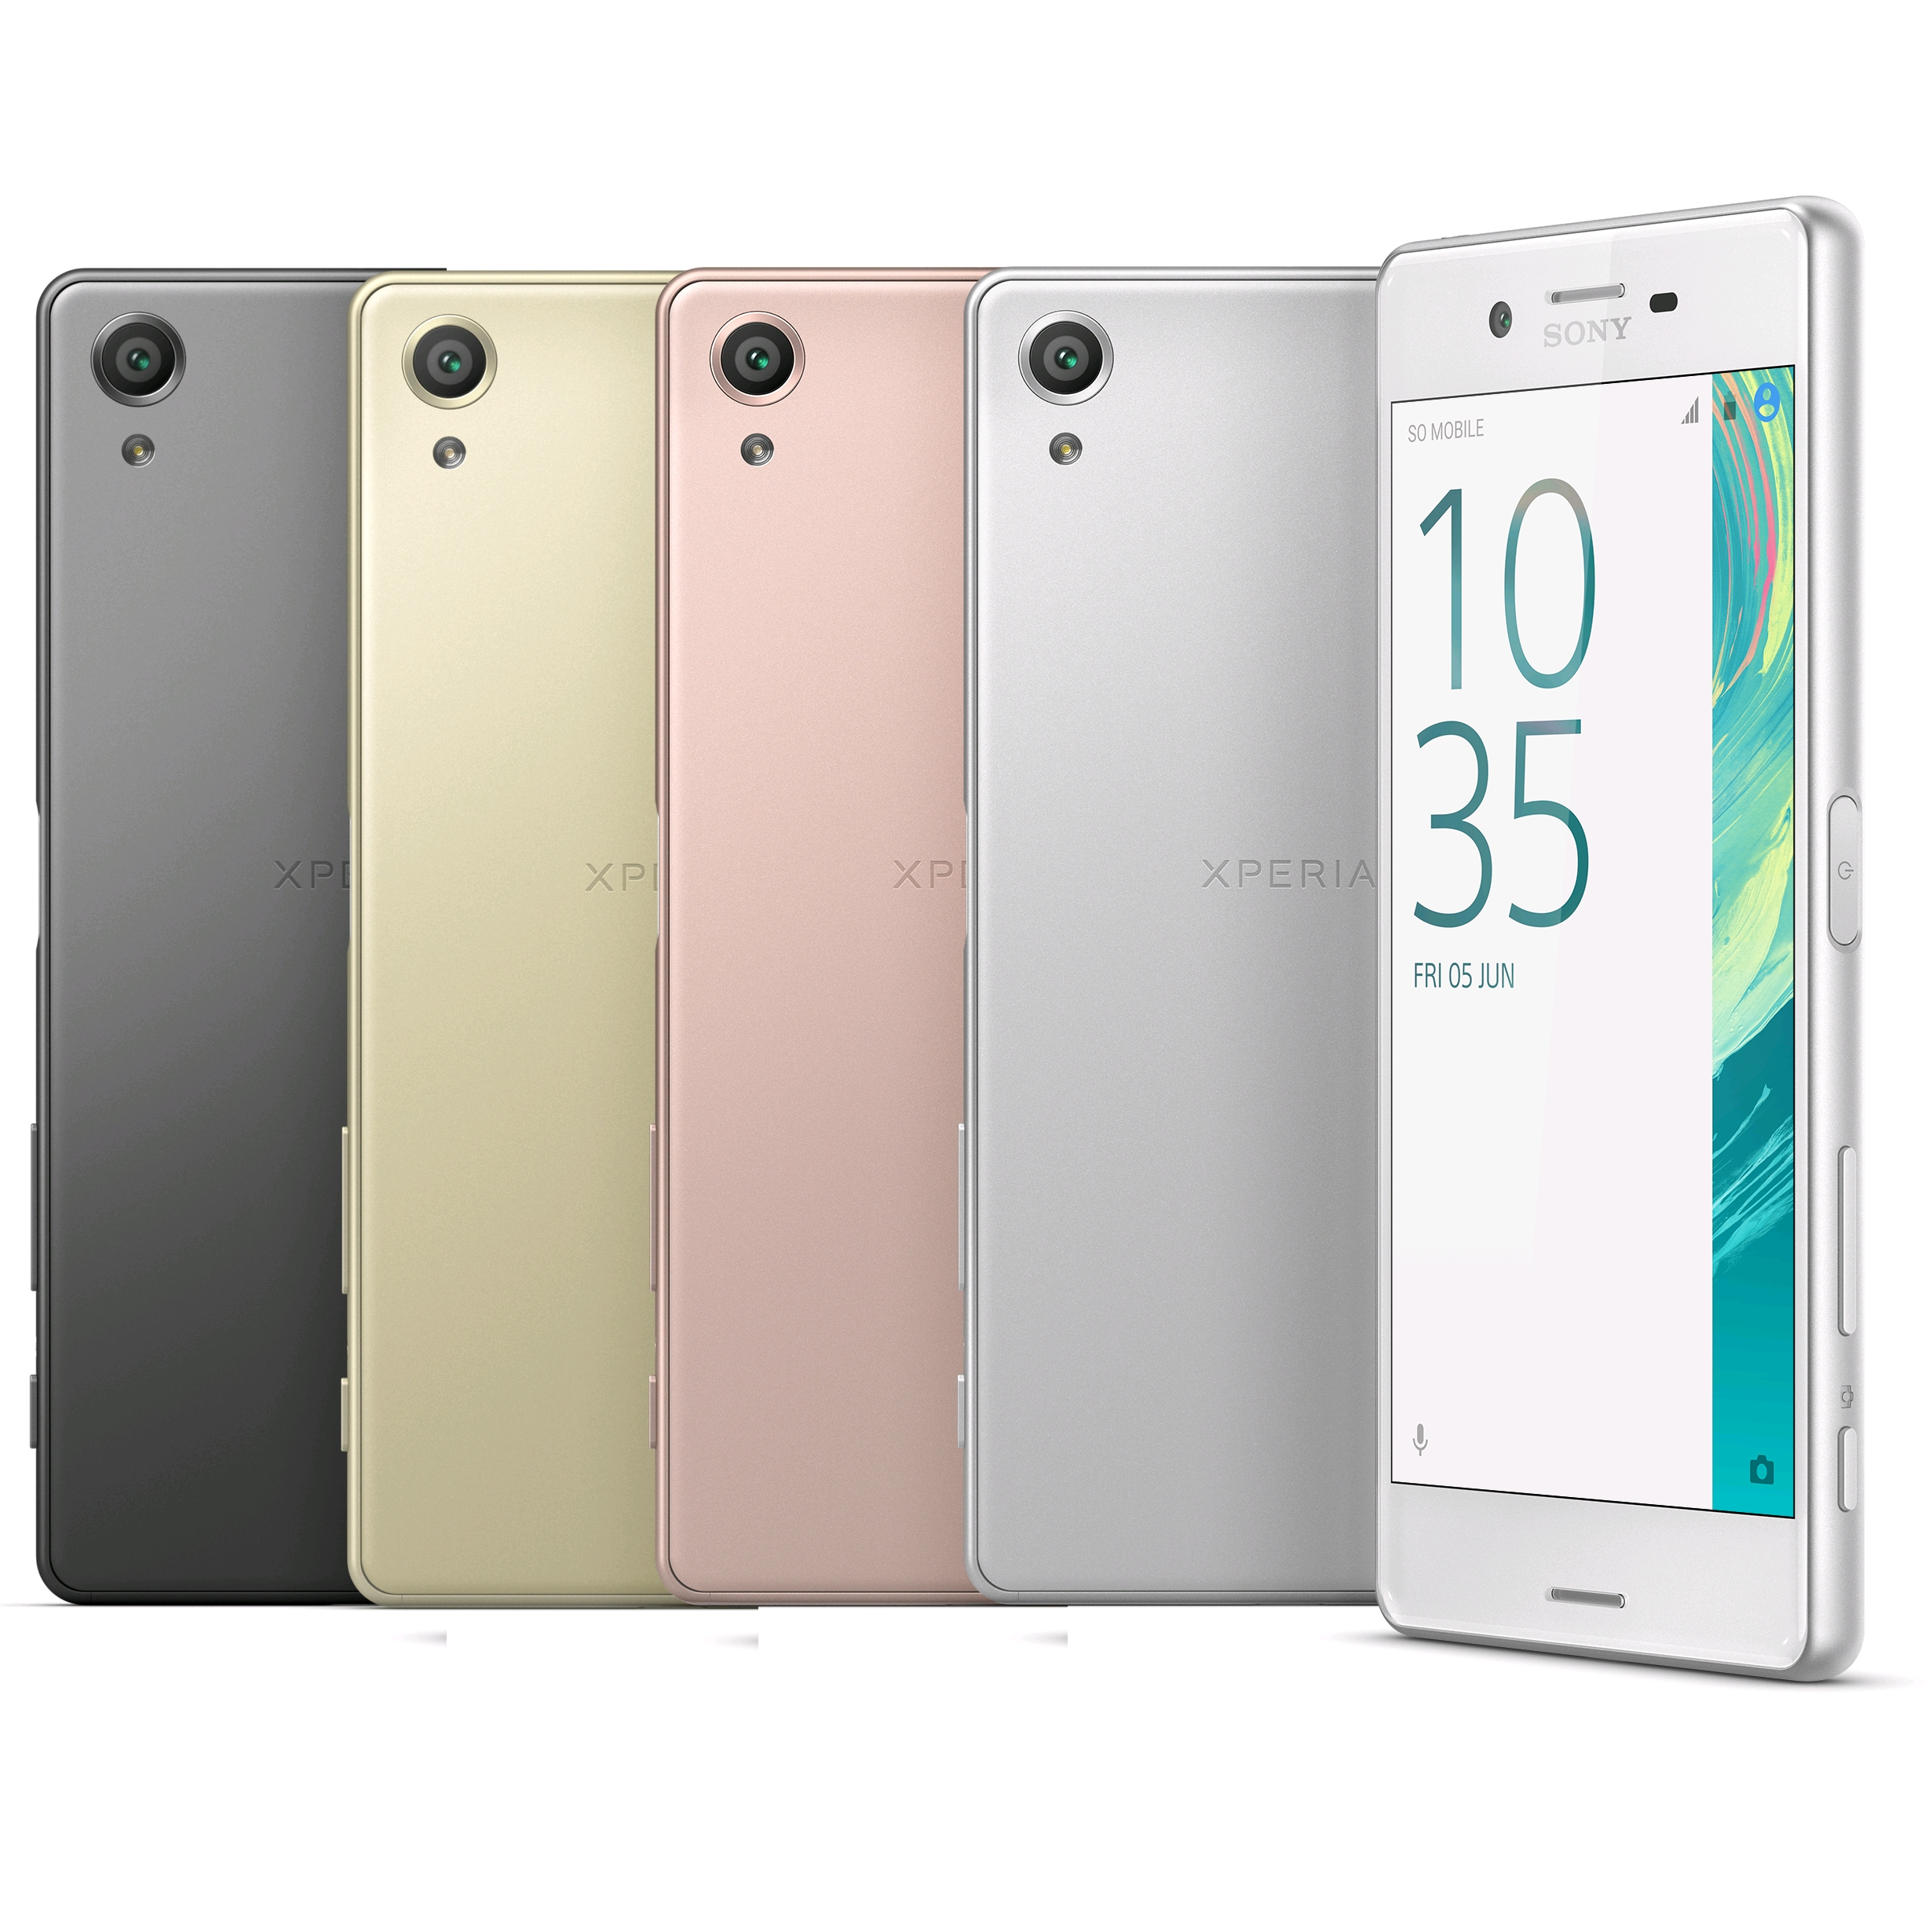 Android 7 1 1 Nougat Is Rolling Out to Sony Xperia X and X Compact